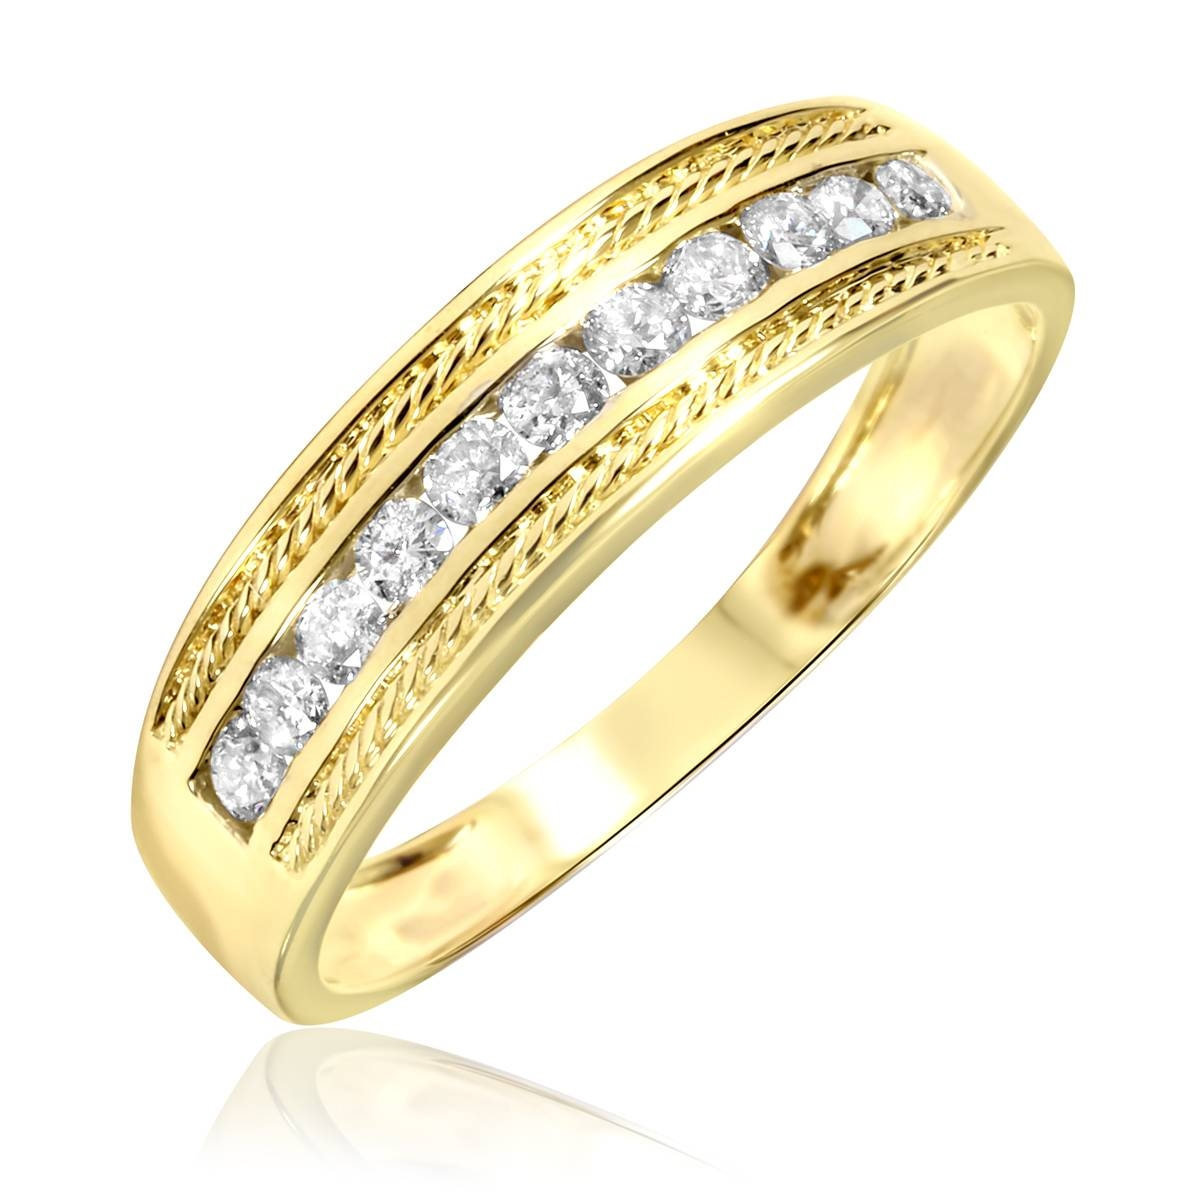 White Gold Wedding Bands For Men : The Astonishing Mens Gold Inside Gold Wedding Bands For Men (View 15 of 15)